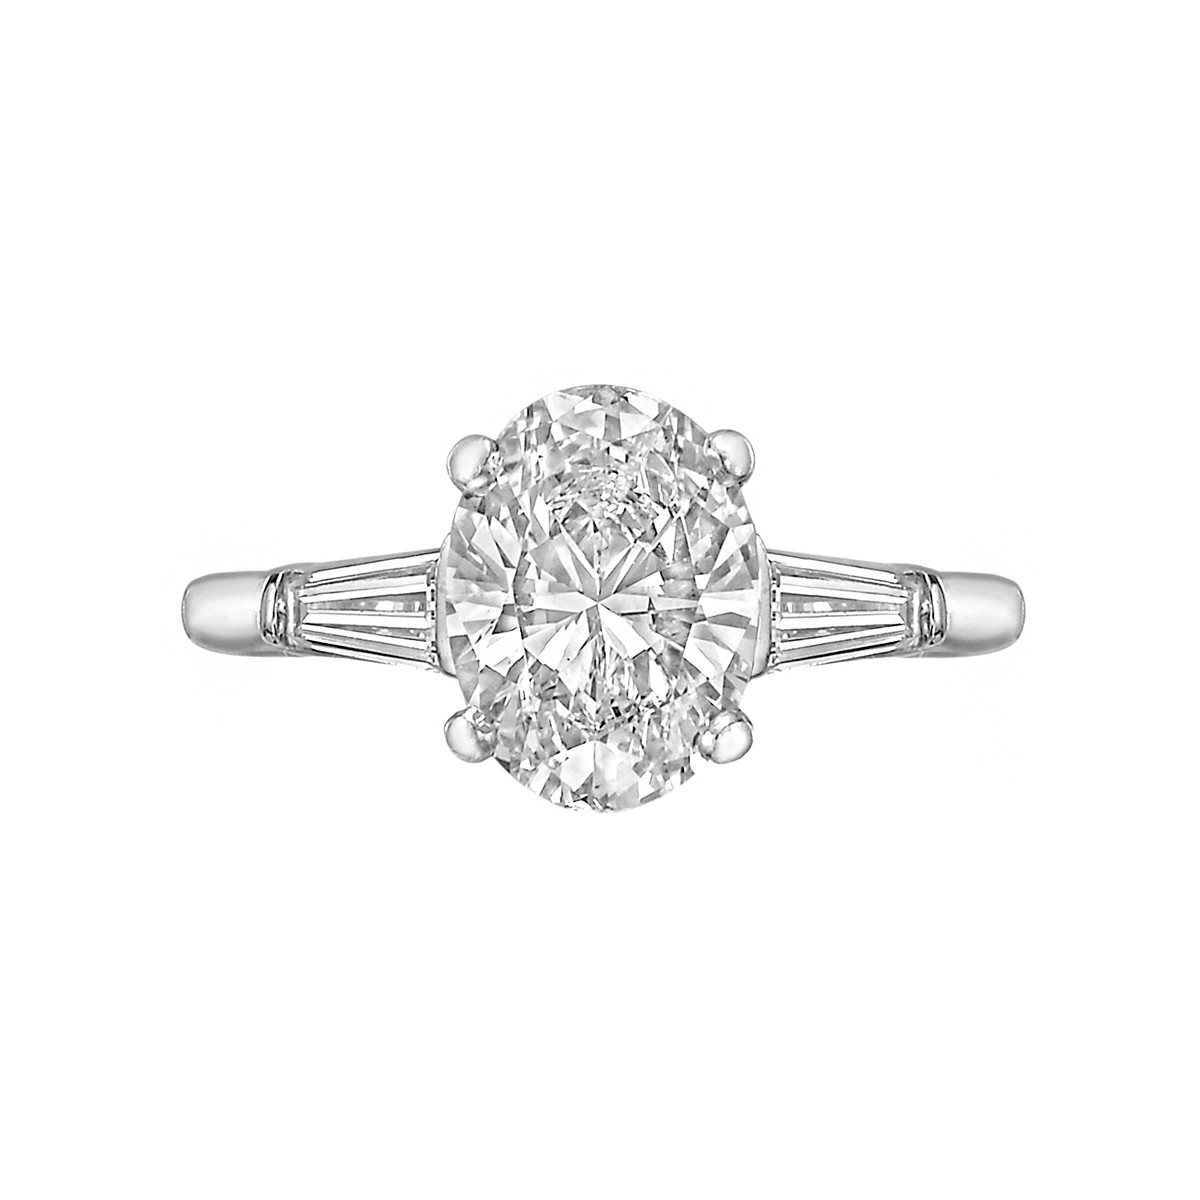 1.51ct Colorless Oval-Cut Diamond Ring